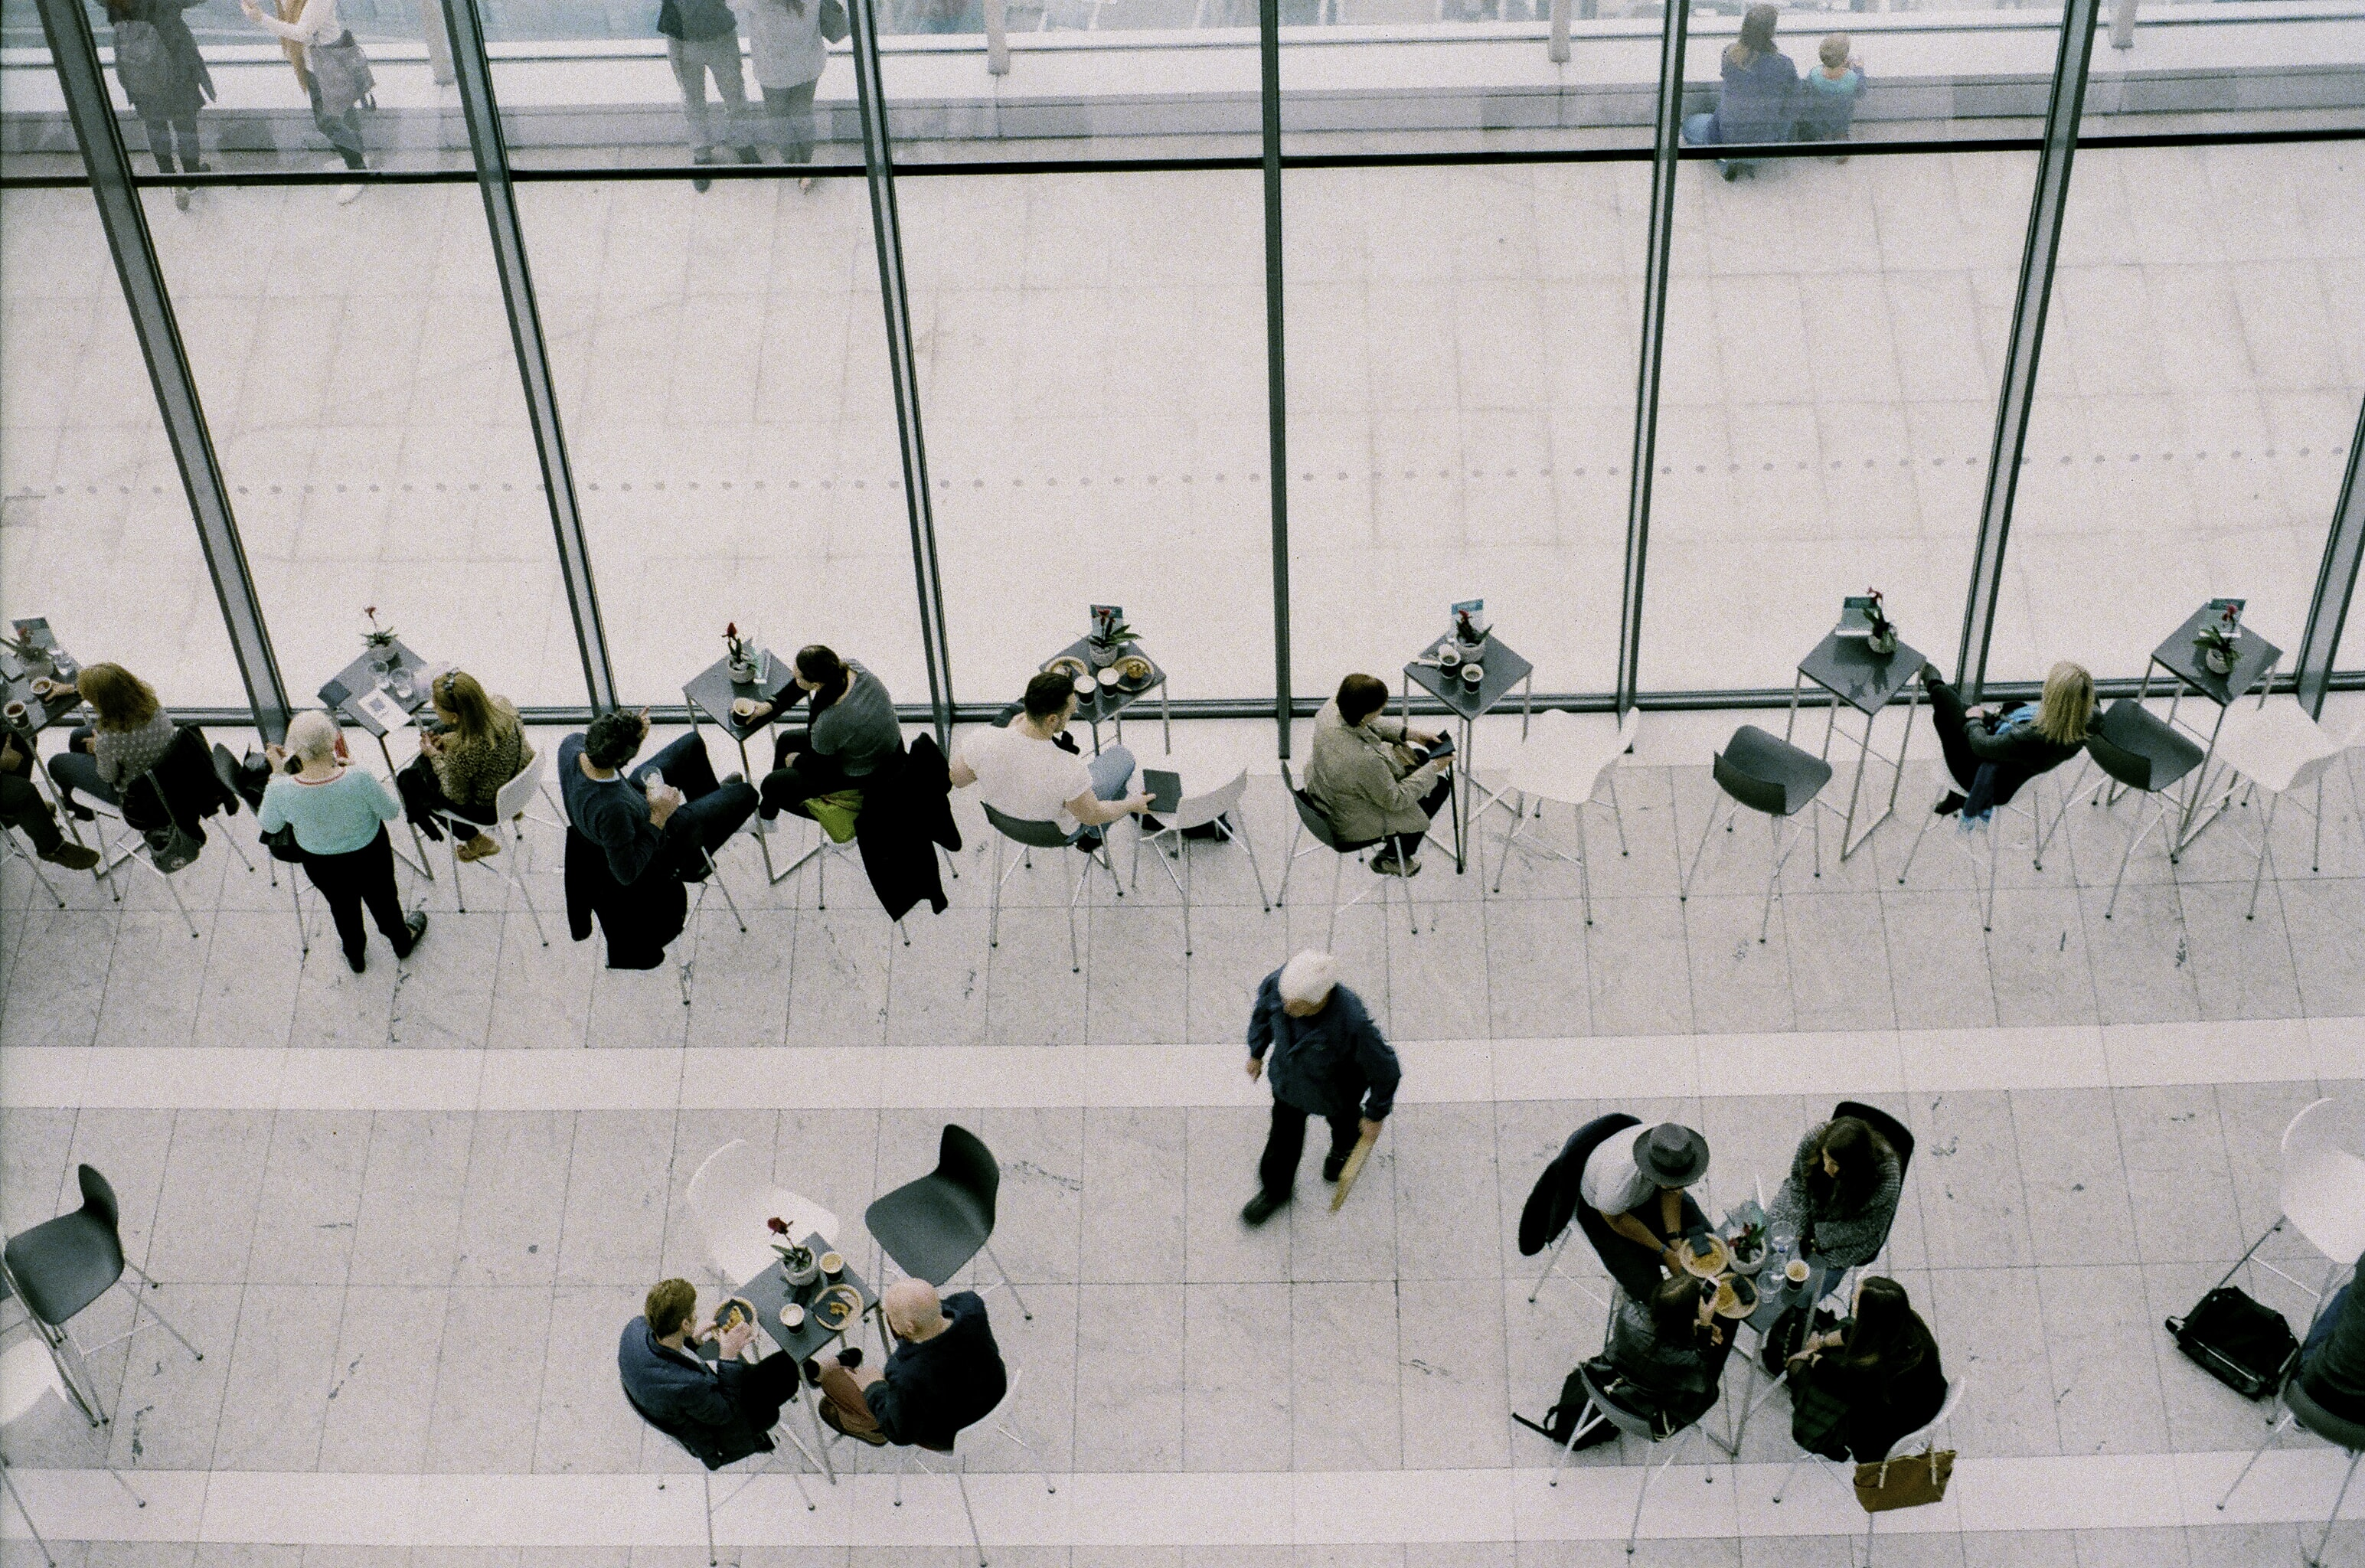 people sitting on chairs near tables during daytime